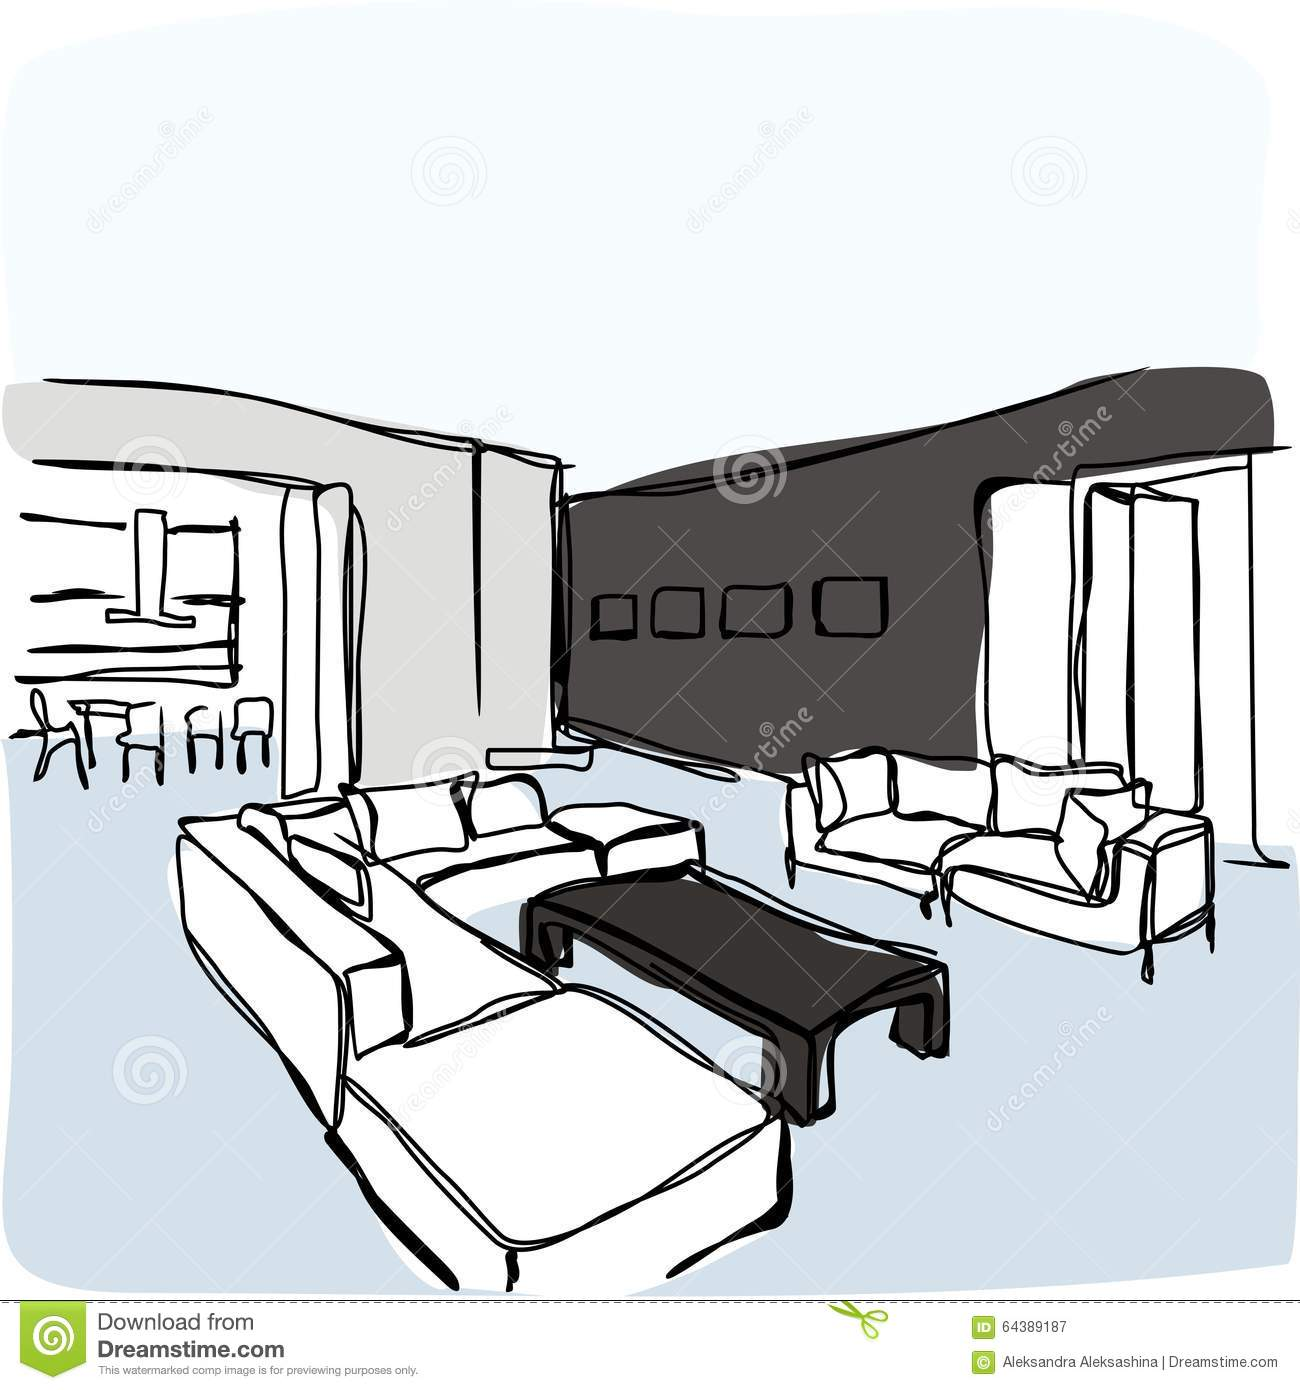 Vector Hand-drawn Interior Stock Vector. Illustration Of